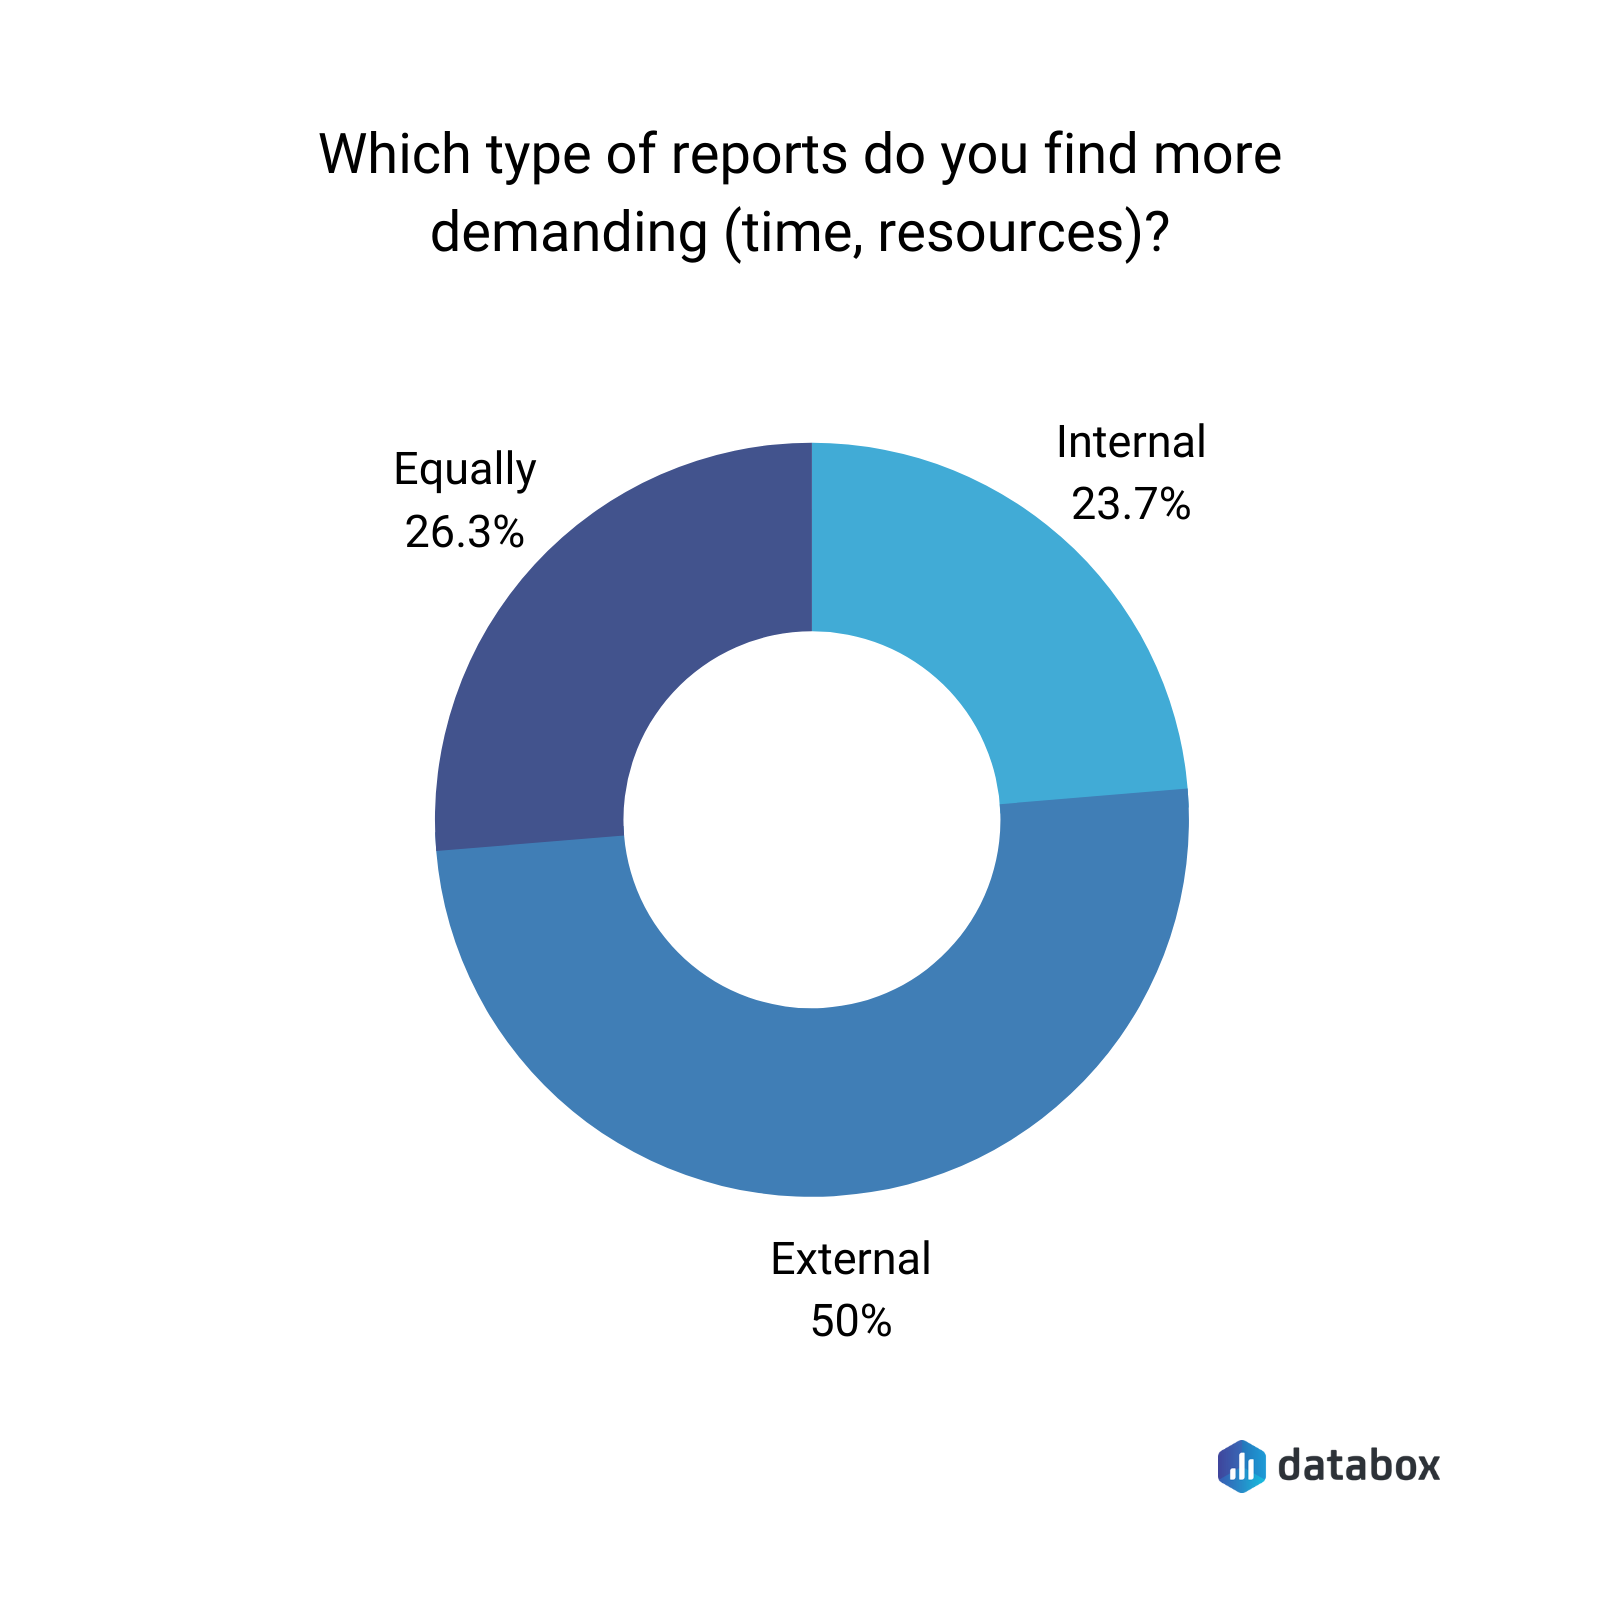 The most demanding types of report to create